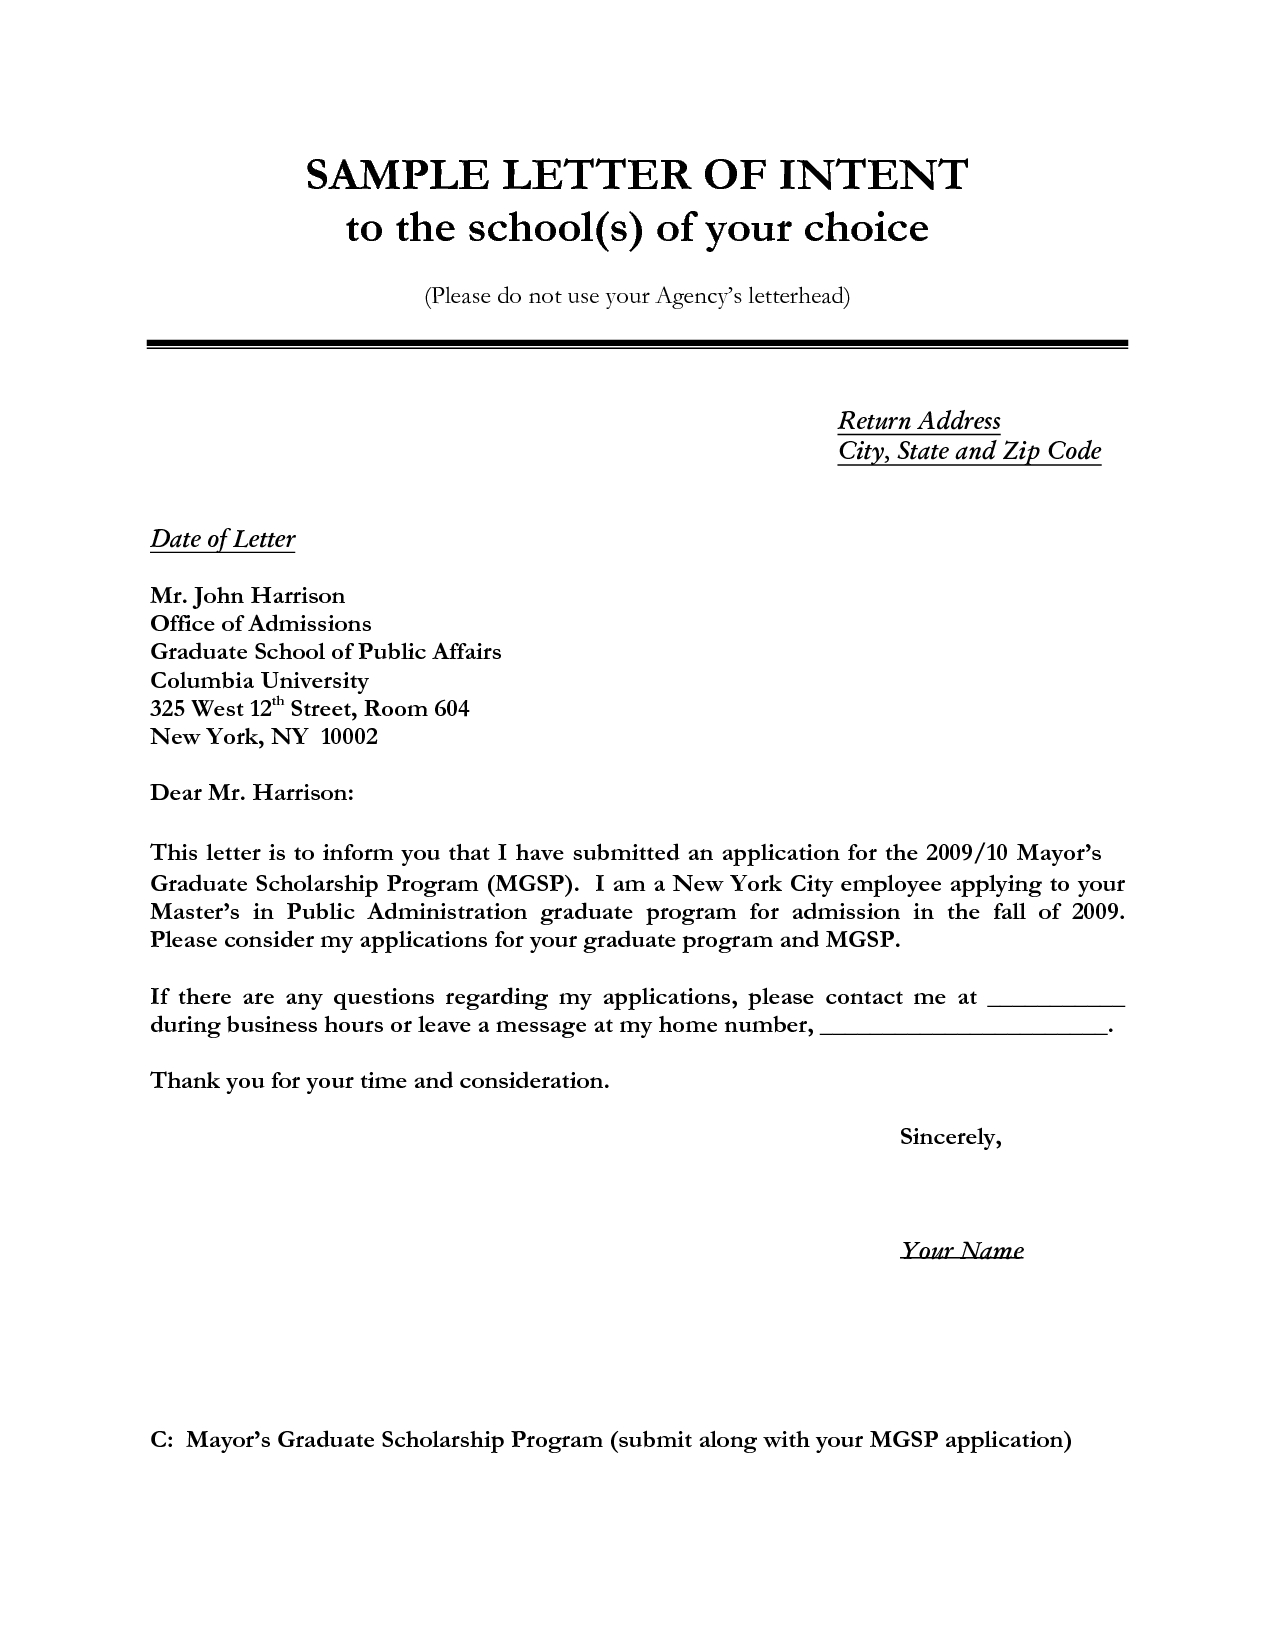 Mechanics Lien Letter Template - Letter Of Intent Sample